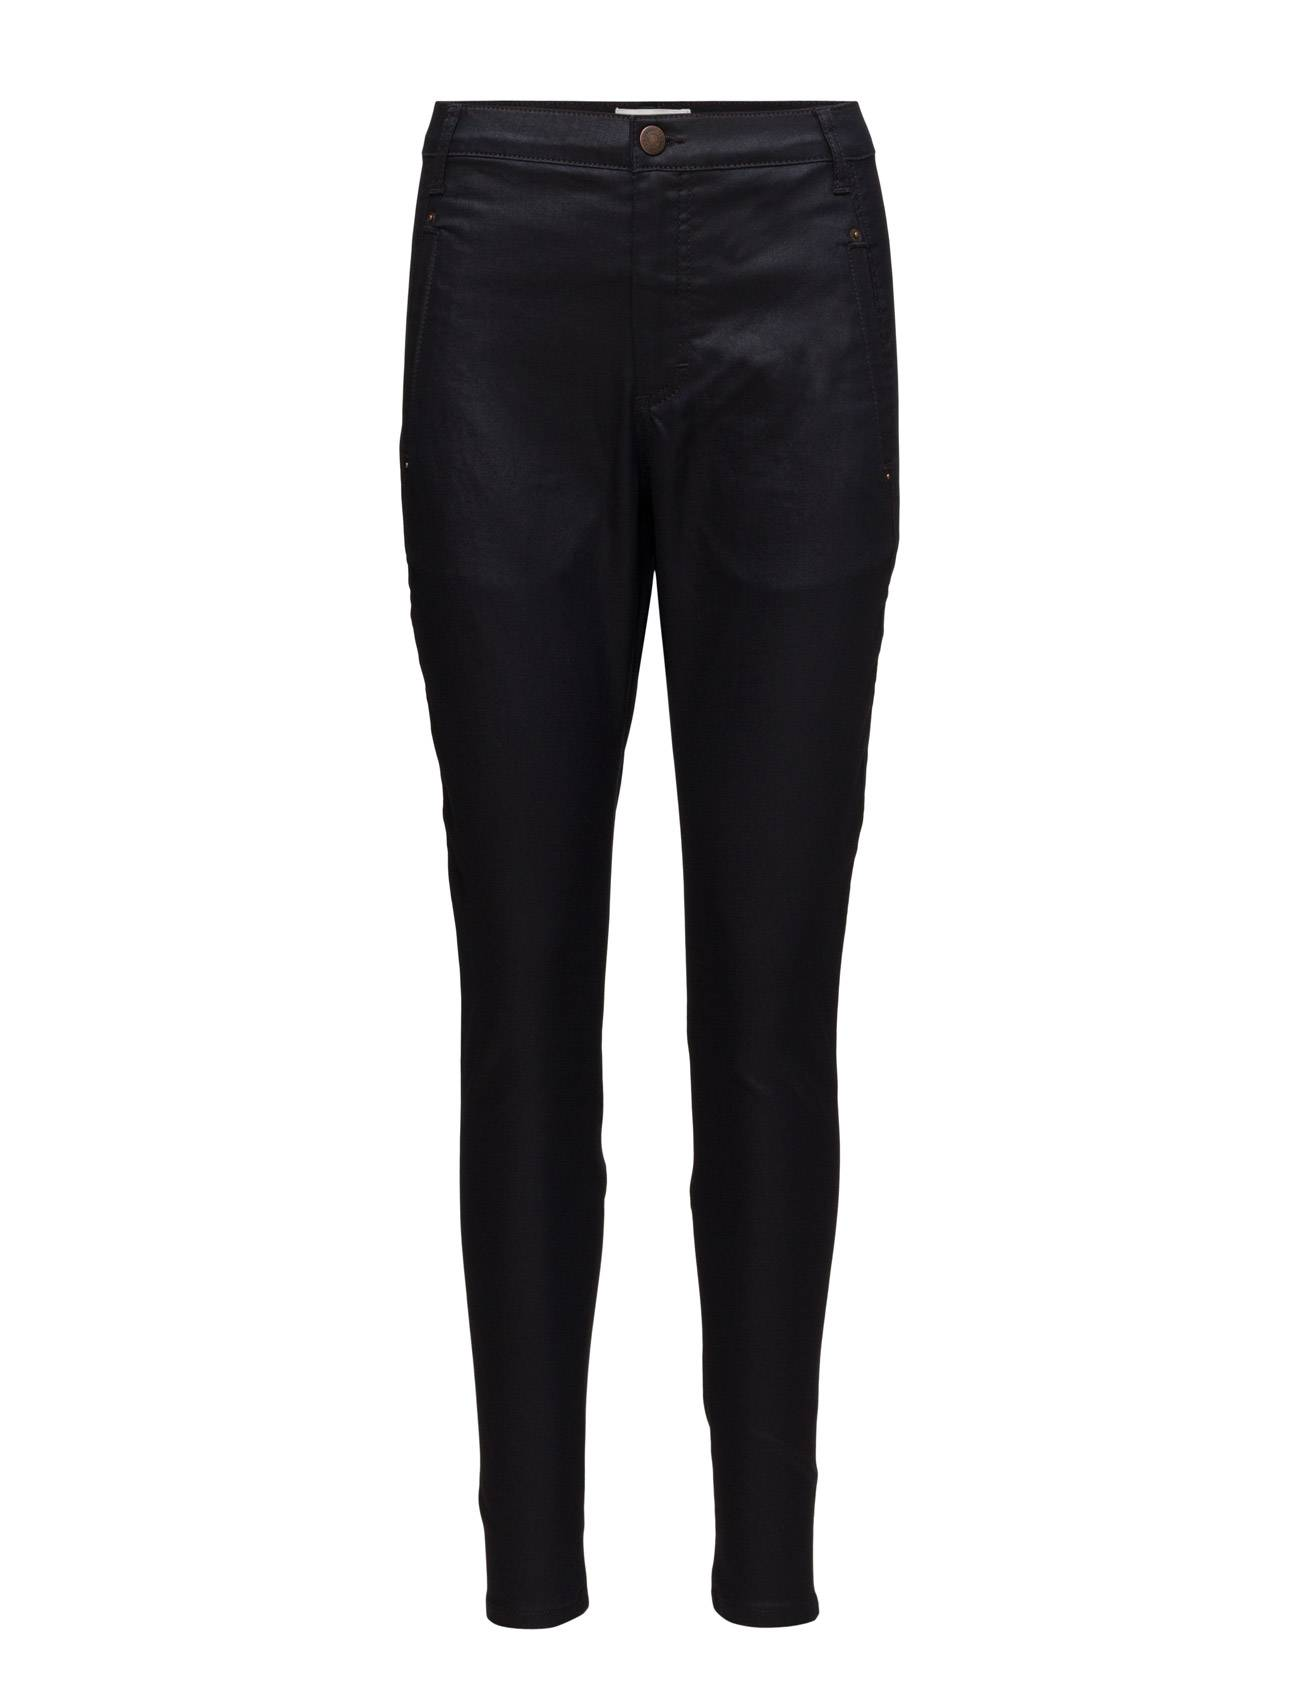 FIVEUNITS Jolie 274 Navy Coated, Jeans